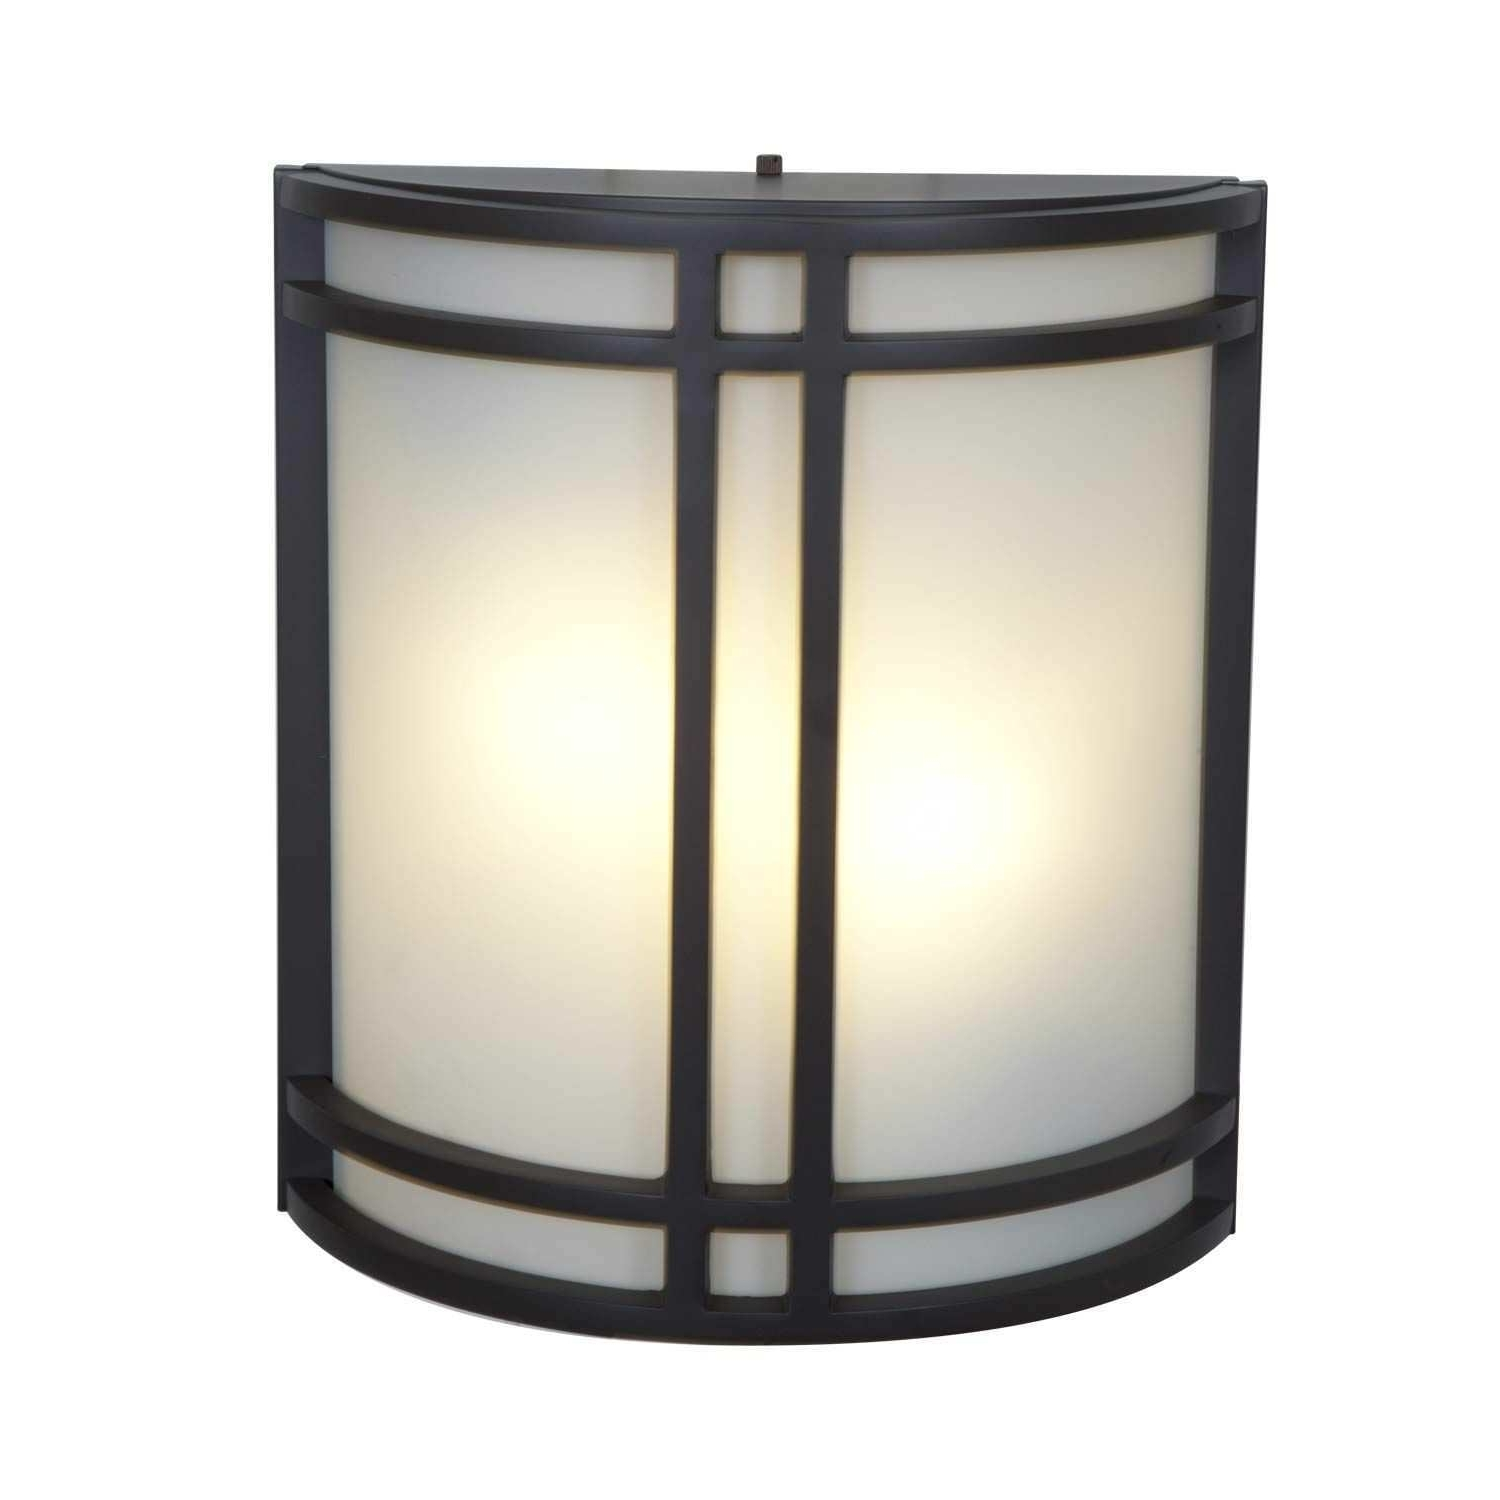 Access Lighting Outdoor Wall Sconces Throughout Widely Used Access Lighting 20362 Artemis 2 Light Outdoor Wall Sconce (Gallery 1 of 20)